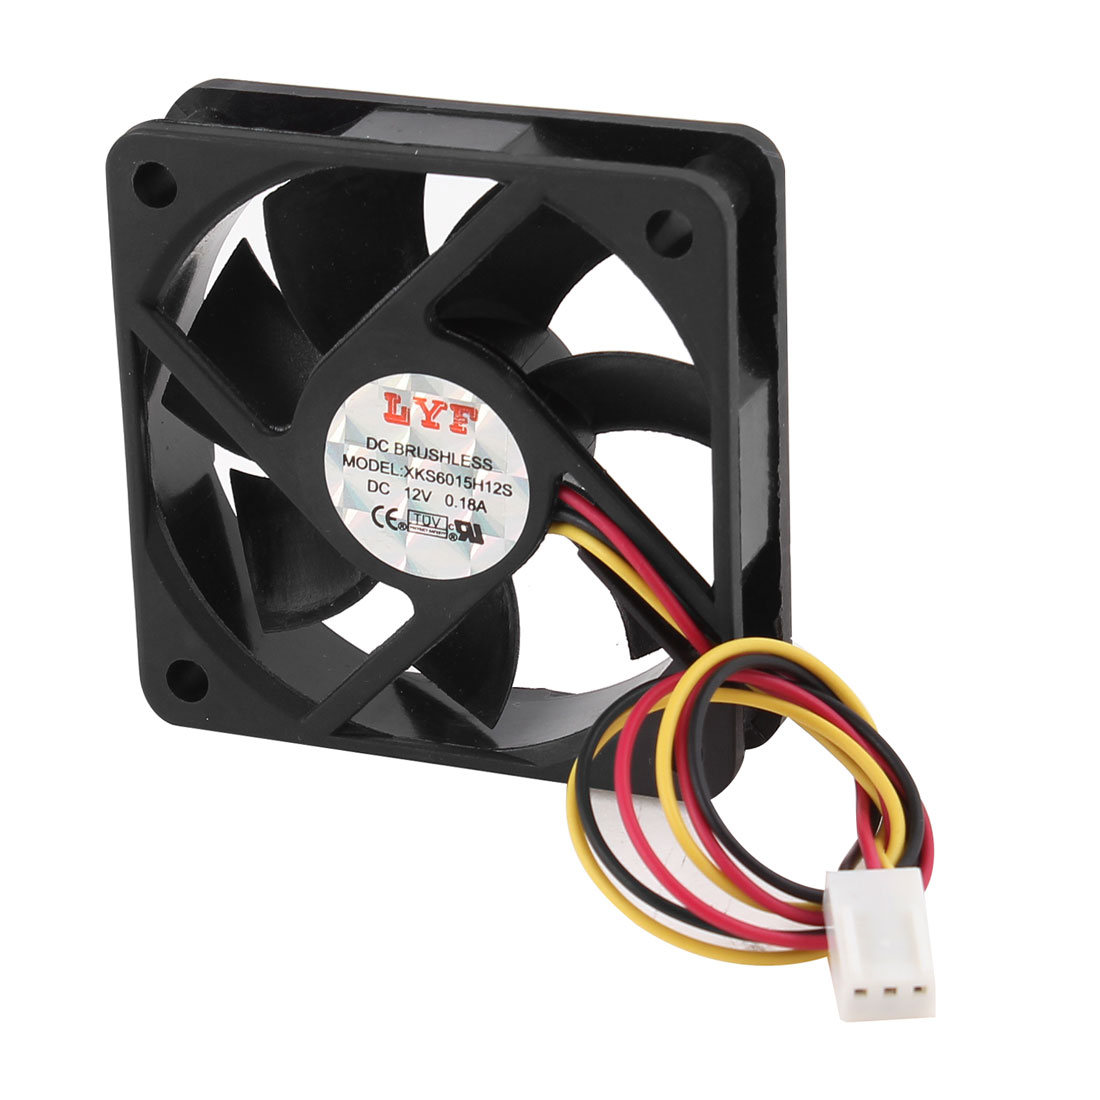 60mm x 15mm DC 12V 3 Pole Connector Brushless Computer Case CPU Cooler Fan